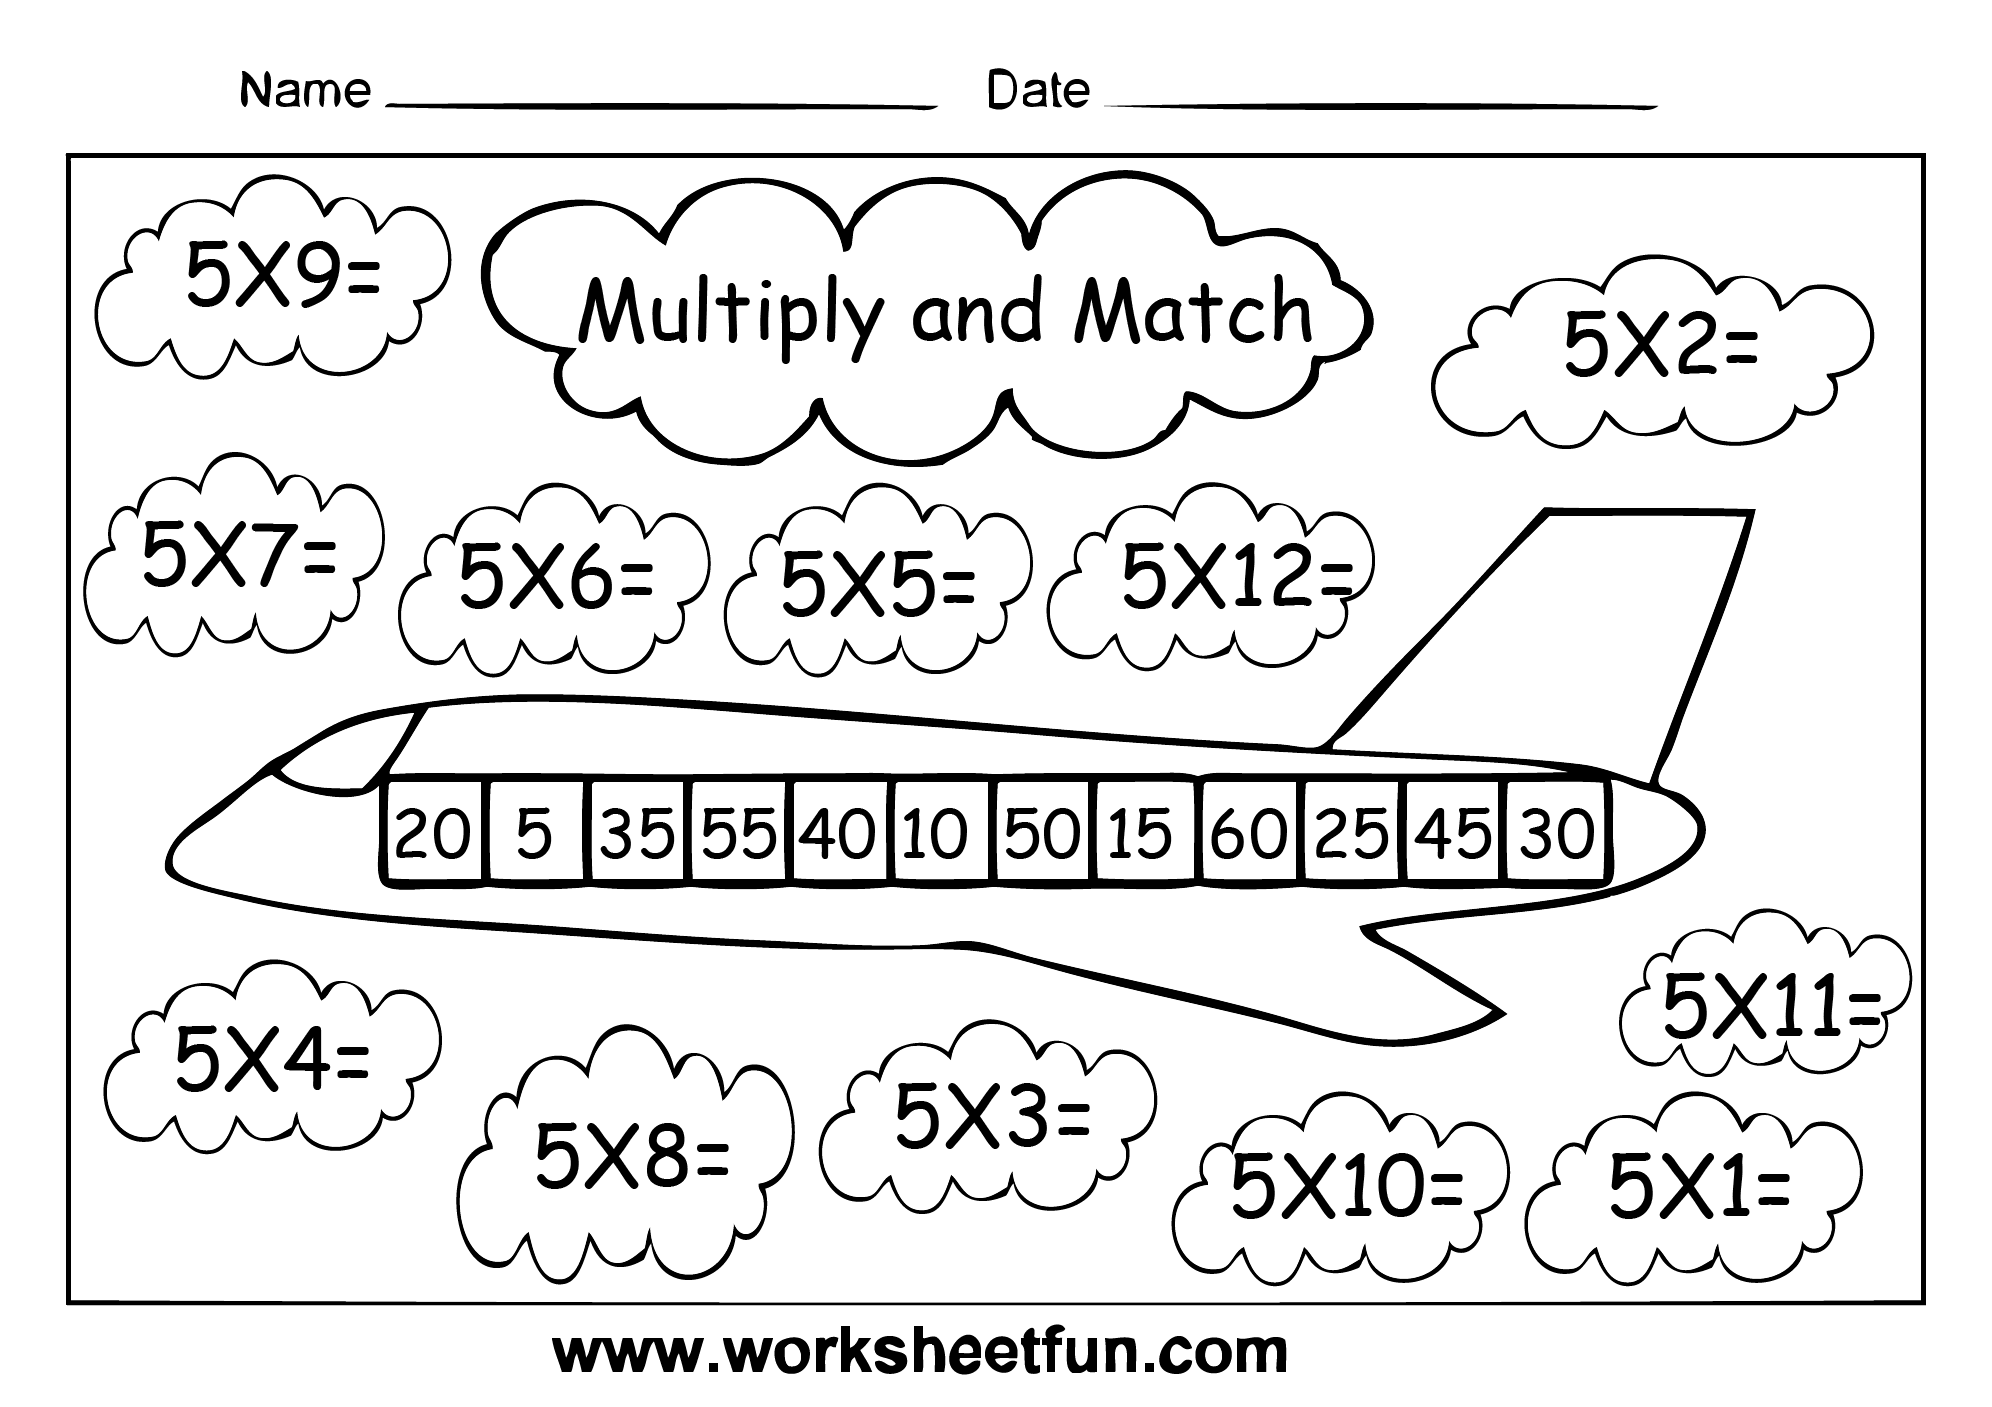 worksheet Multiplication By 2 Worksheets 78 images about multiply on pinterest 3rd grade math maze and learning